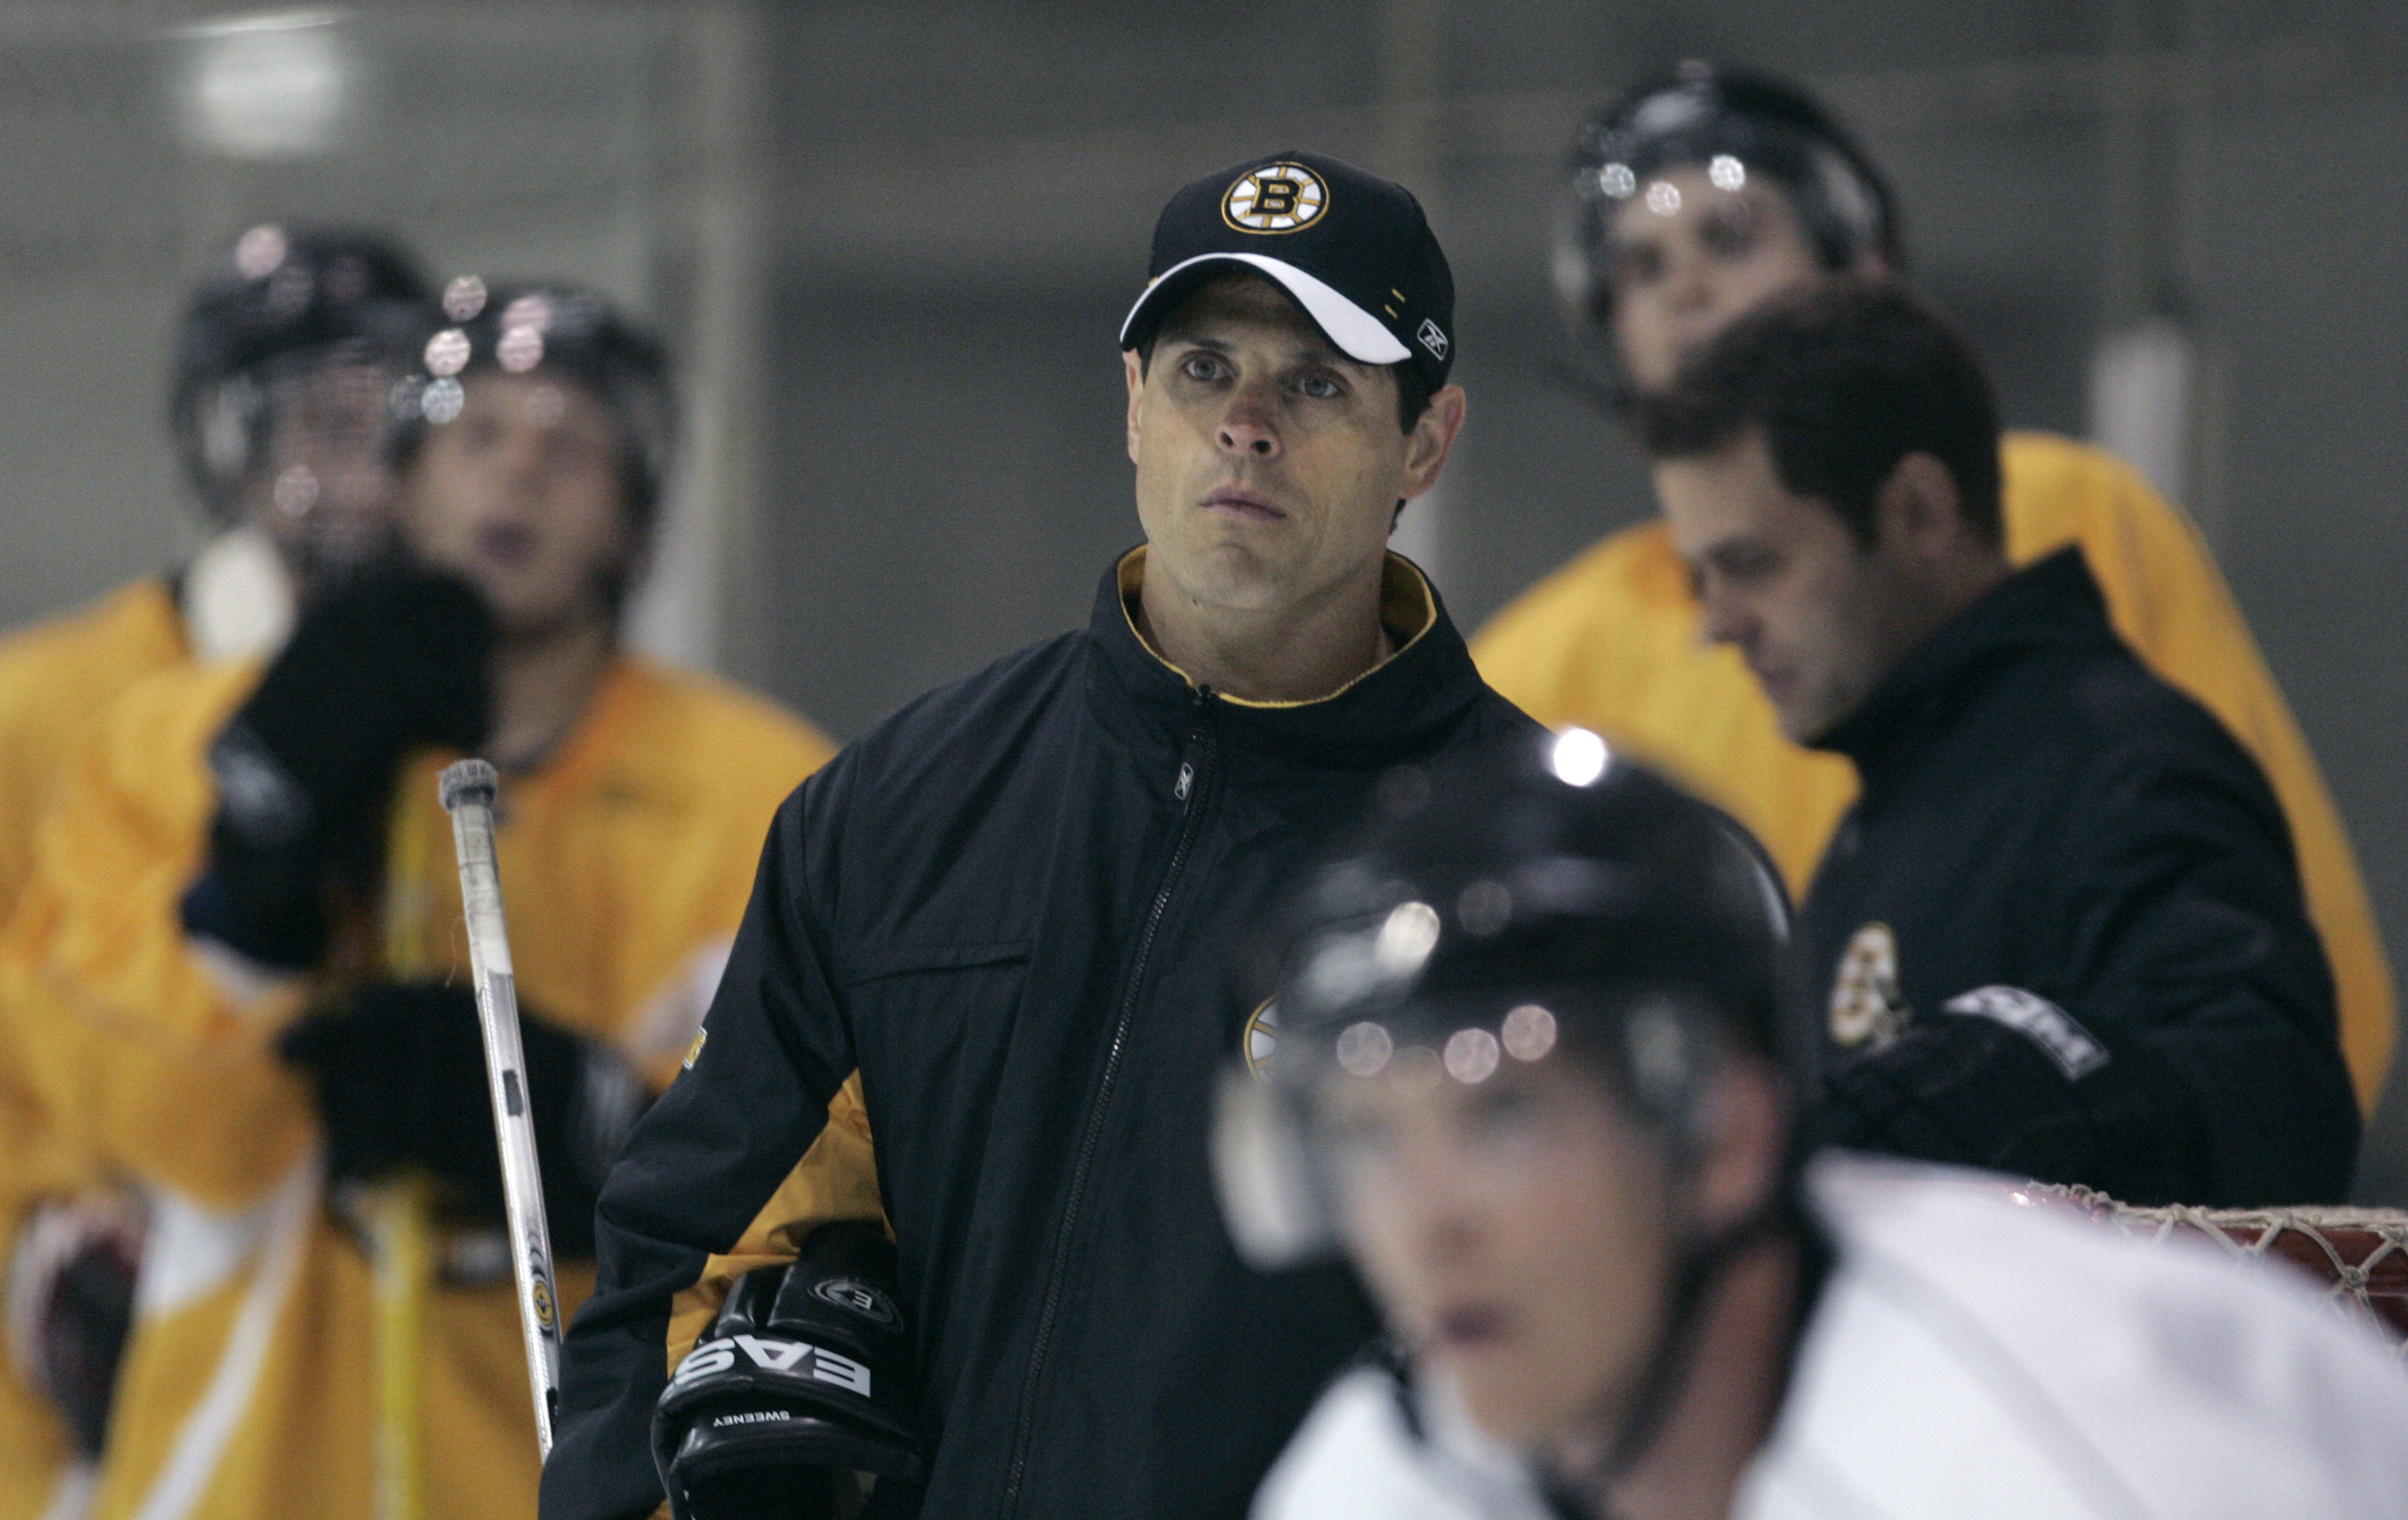 Boston Bruins director of player development Don Sweeney, center, watches play during a hockey team development camp in Wilmington, Mass. Monday, July 9, 2007.(AP Photo/Charles Krupa)